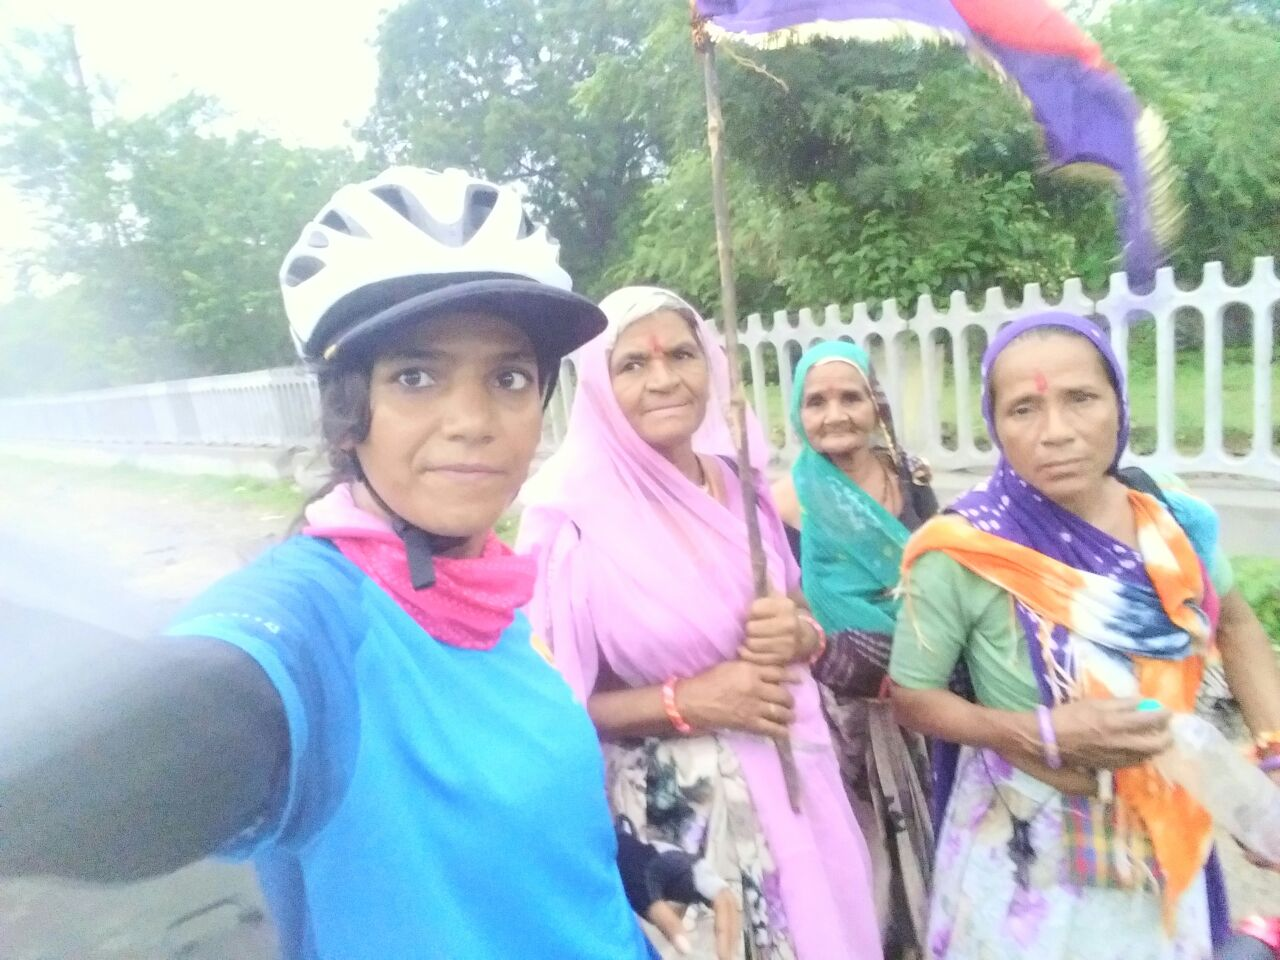 Sunita Singh Choken with Pilgrims on solo cycling expedition